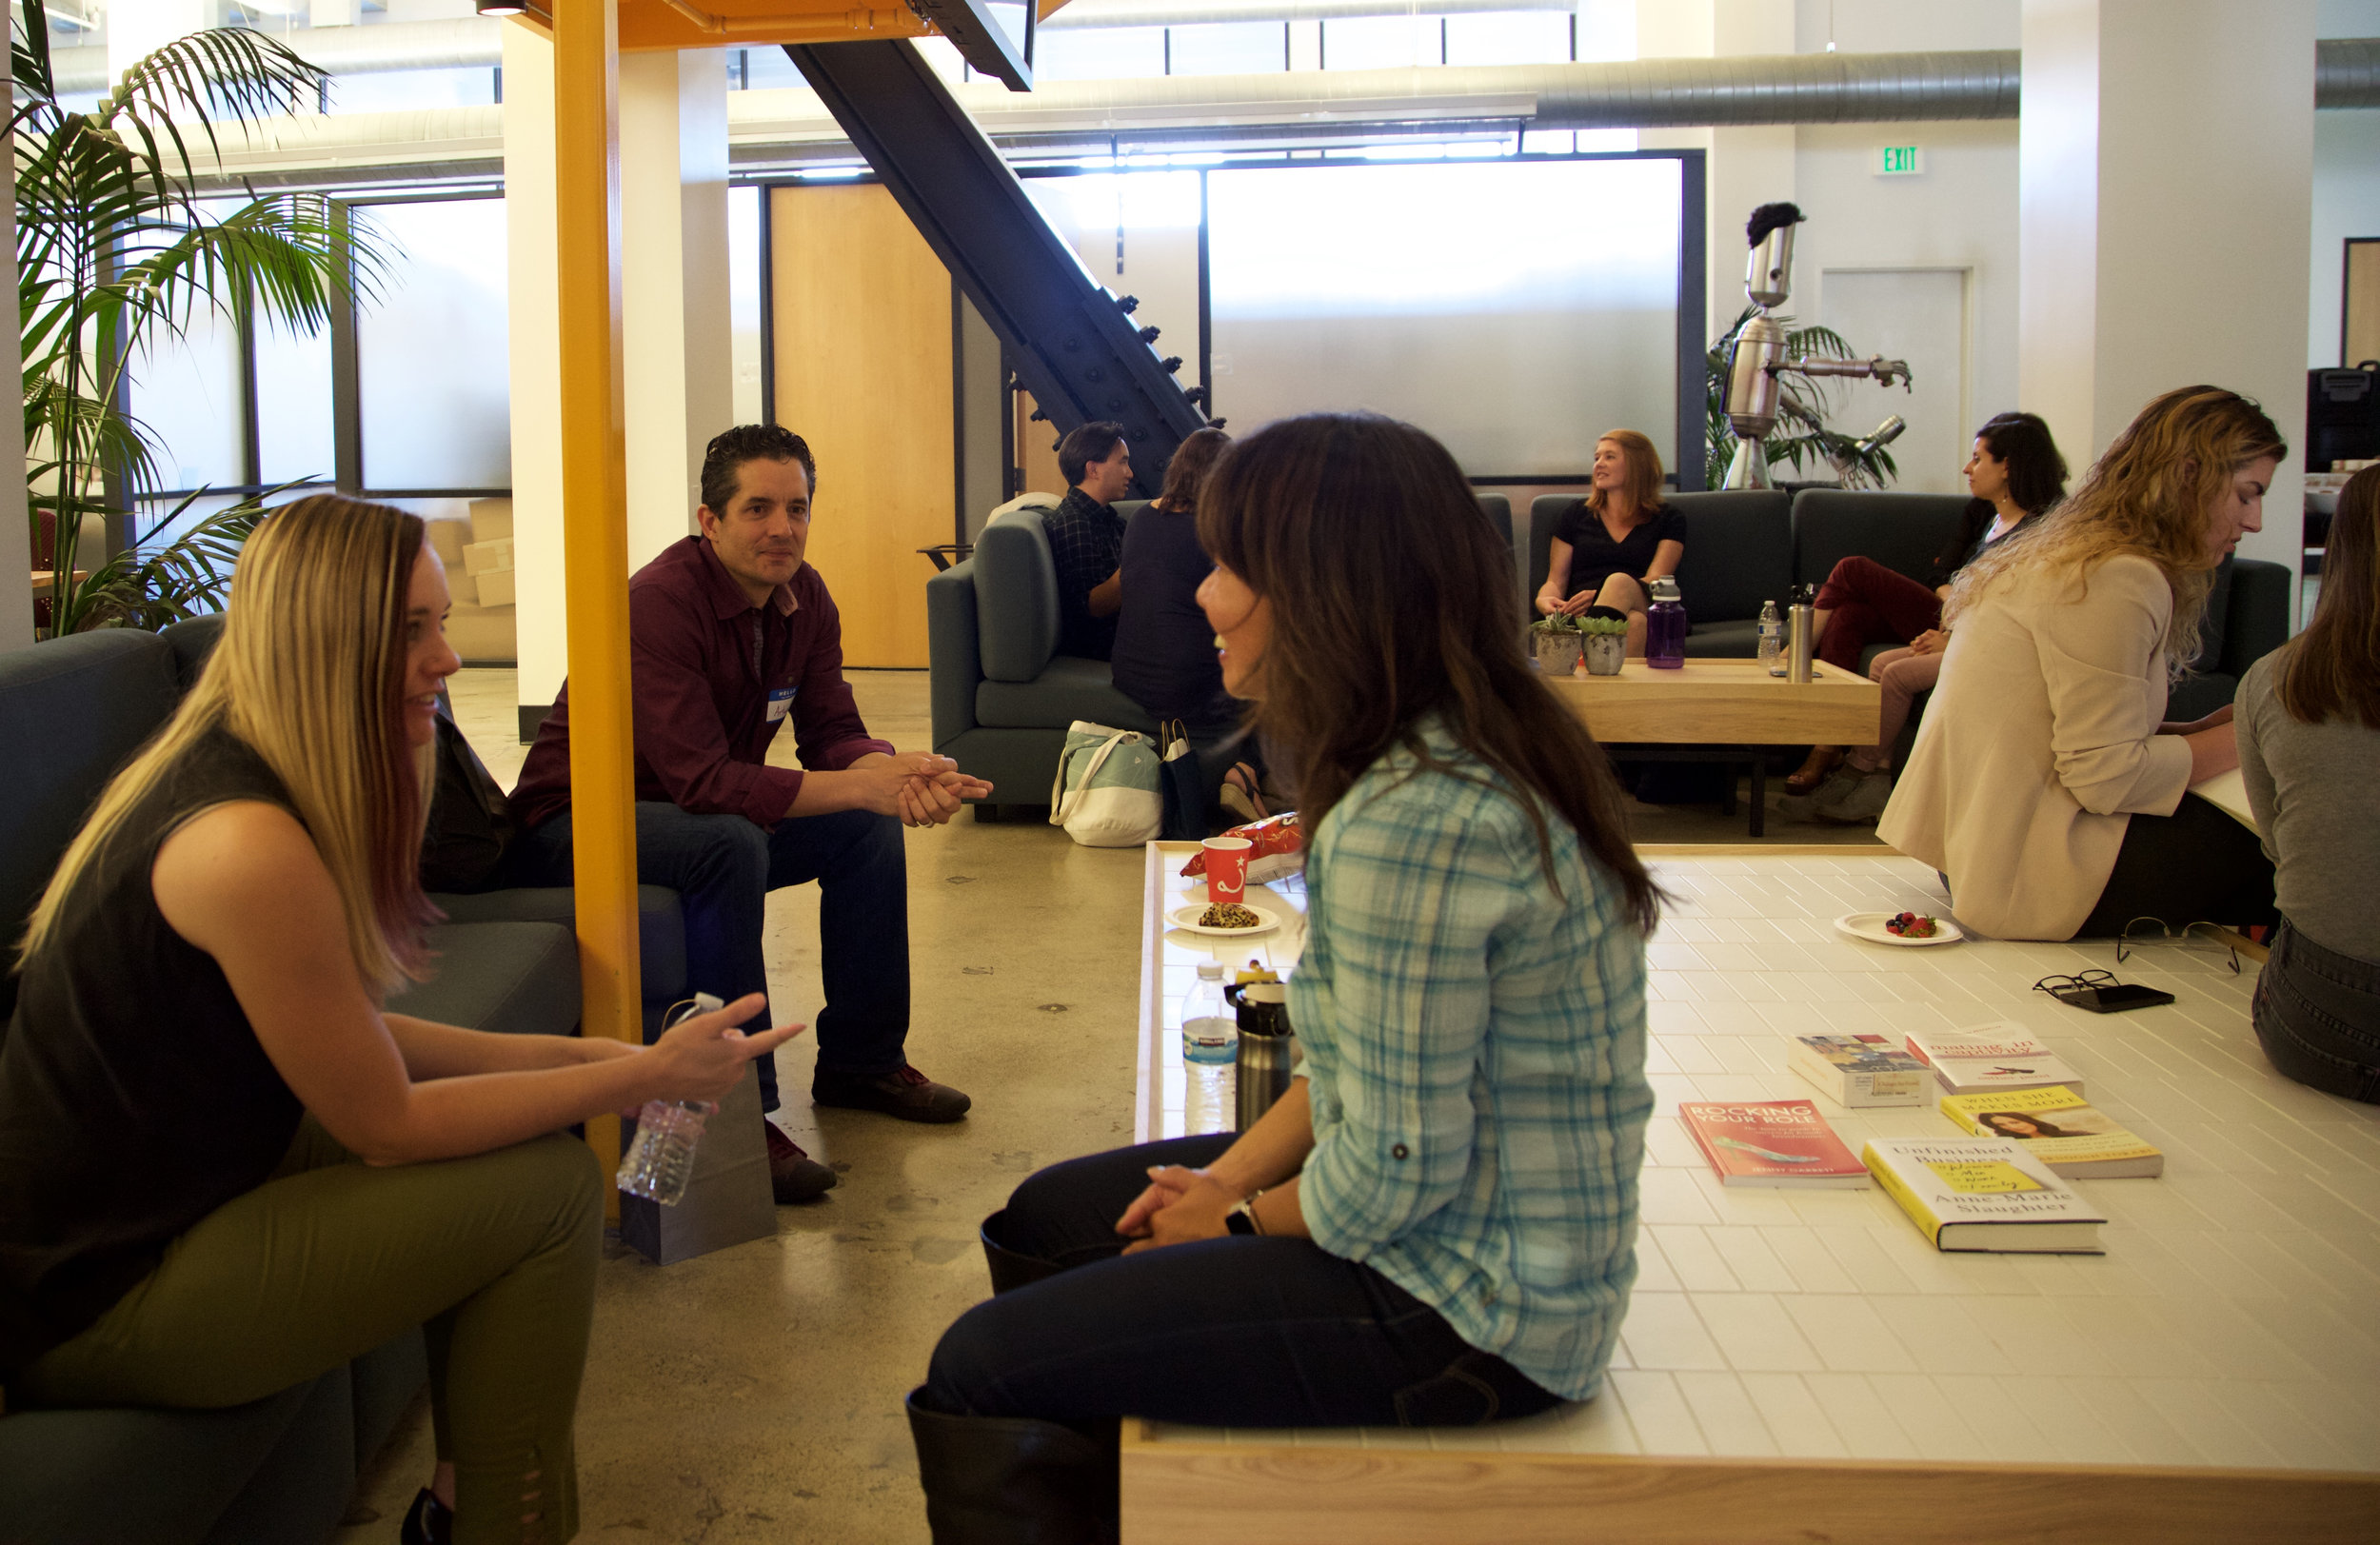 Speakers Melanie Williams from Frog Design, Arturo Menuiot from Alloy PD chat with director Izzy